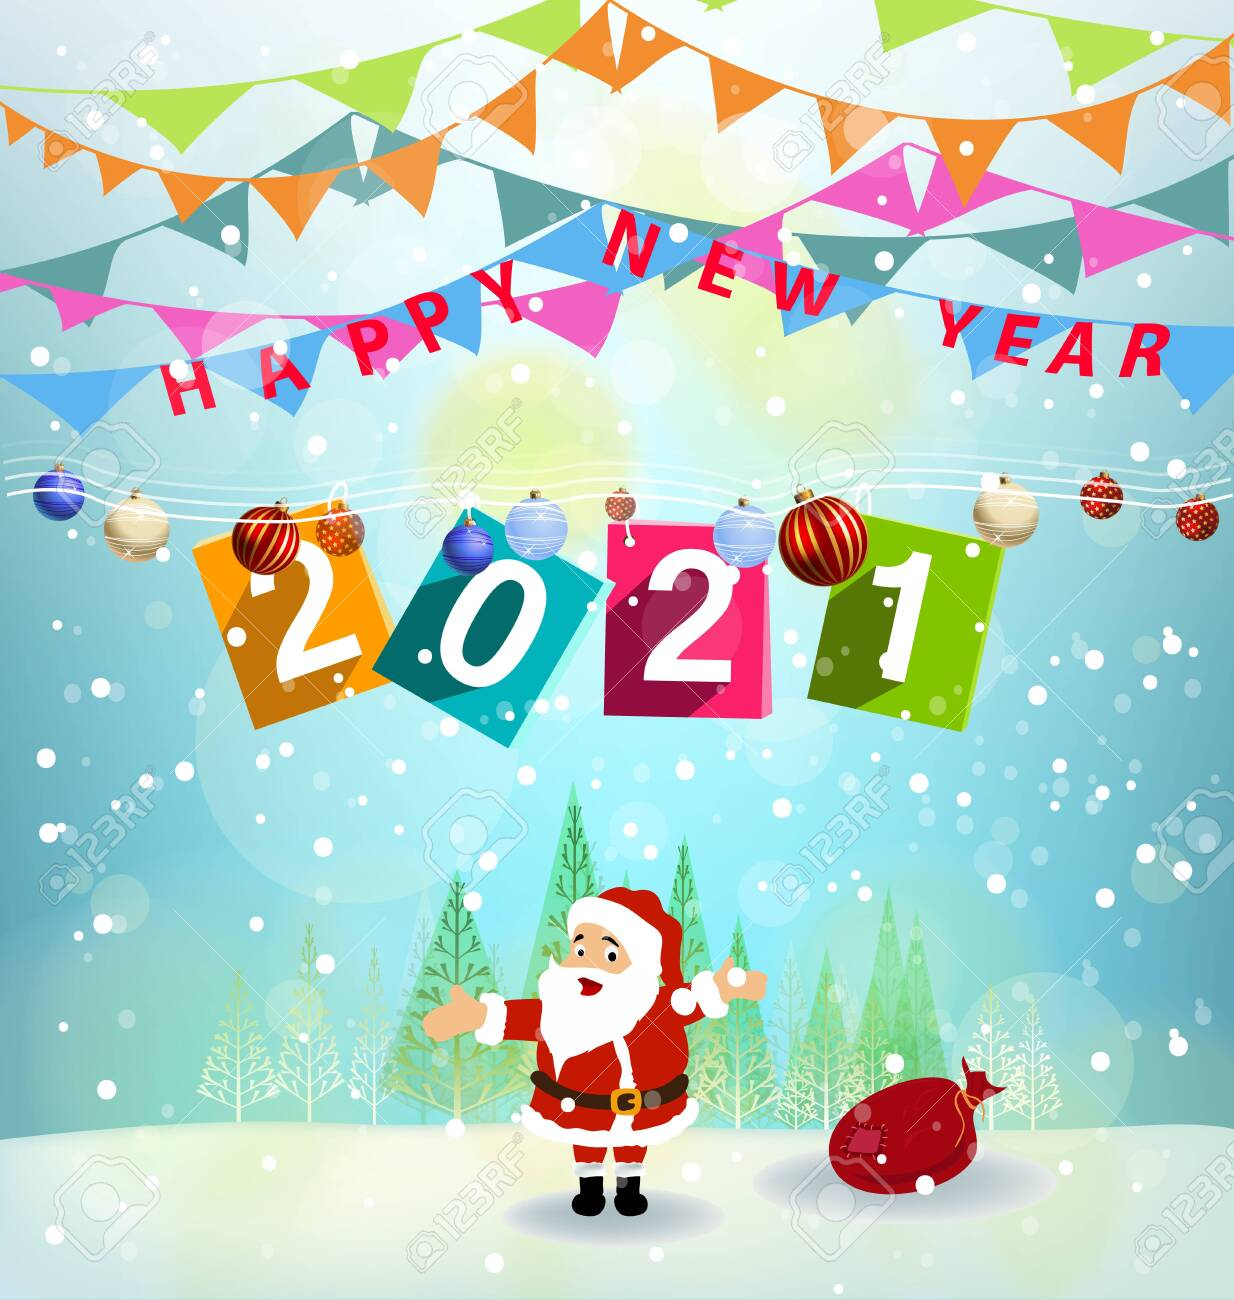 Merry Christmas 2021 Clipart Merry Christmas 2021 Royalty Free Cliparts Vectors And Stock Illustration Image 144438653